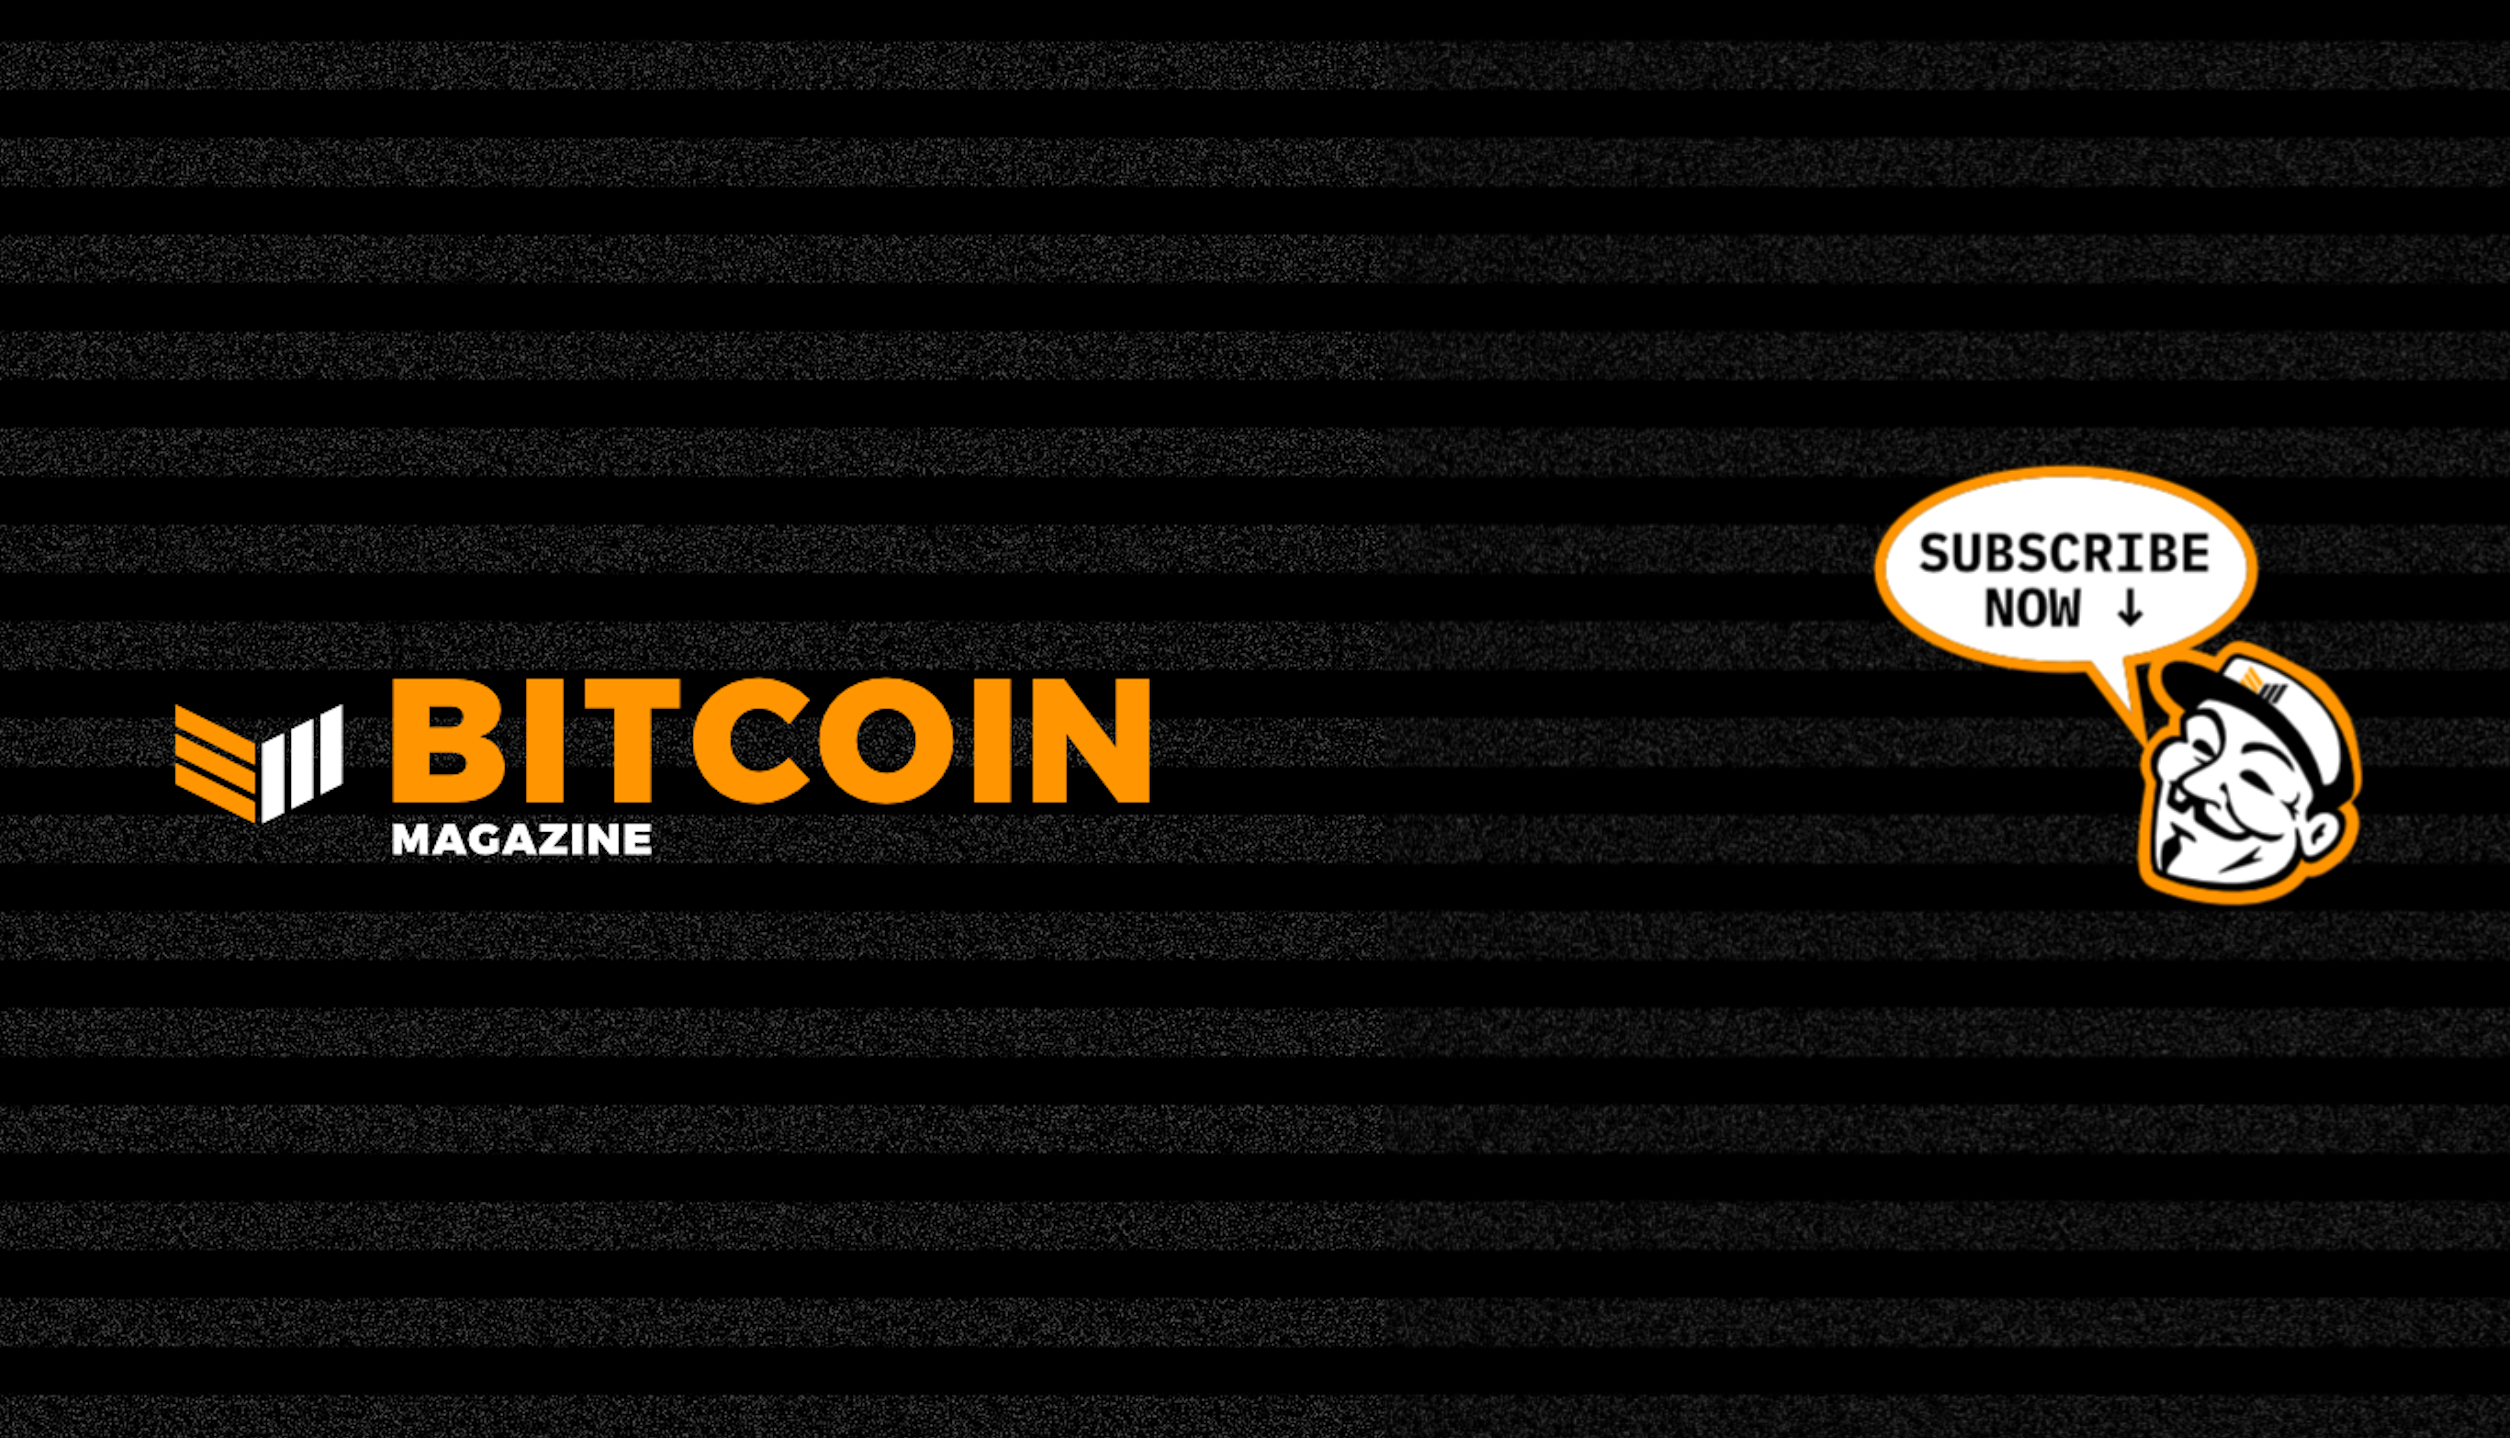 Subscribe to the Bitcoin Magazine YouTube Channel!